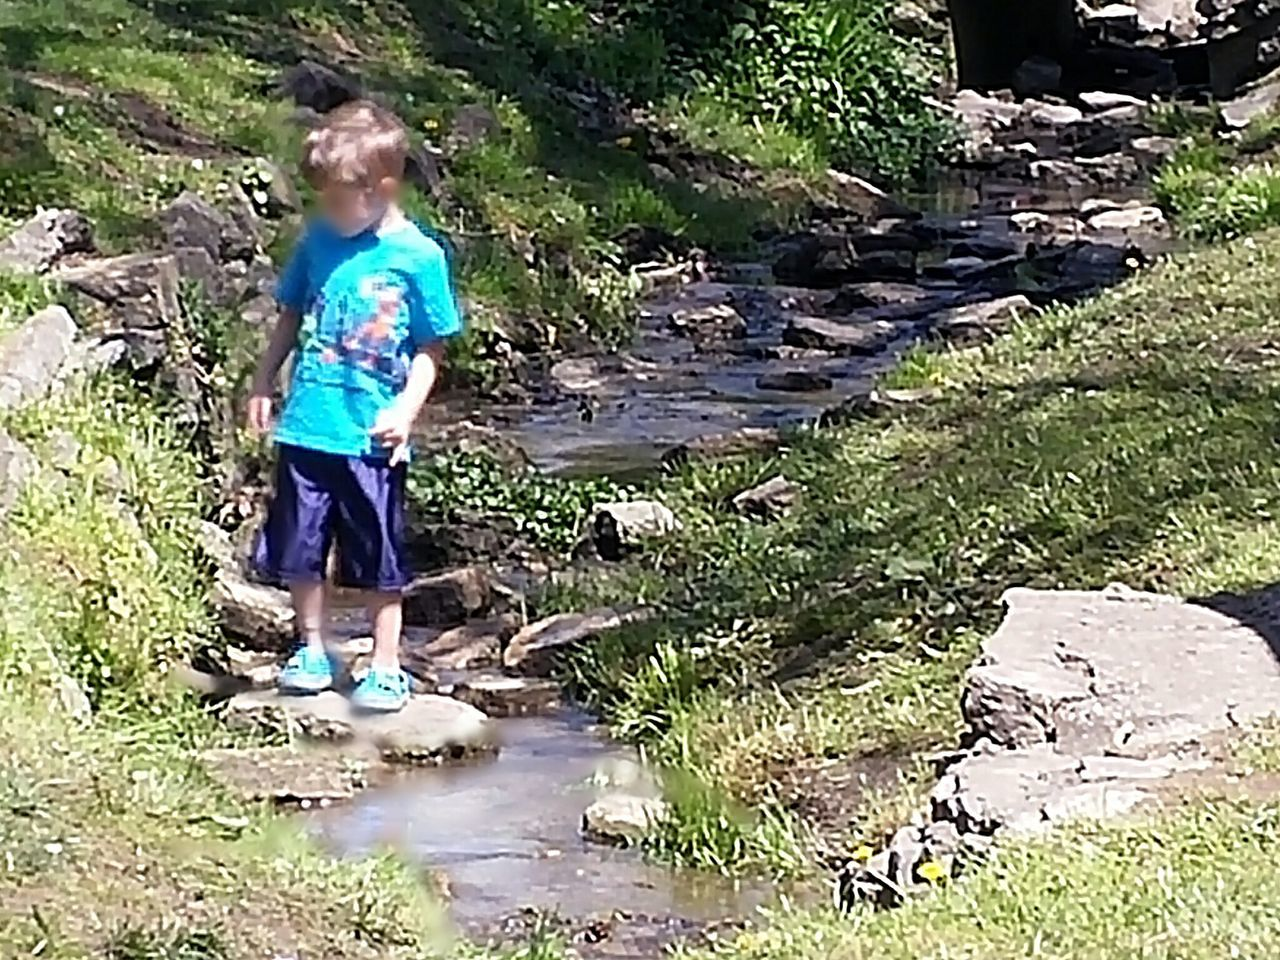 Fresh On Eyeem  Creek Boy Playing Playing In The Creek Play Child Stream Rocks Outdoors Playing Outside